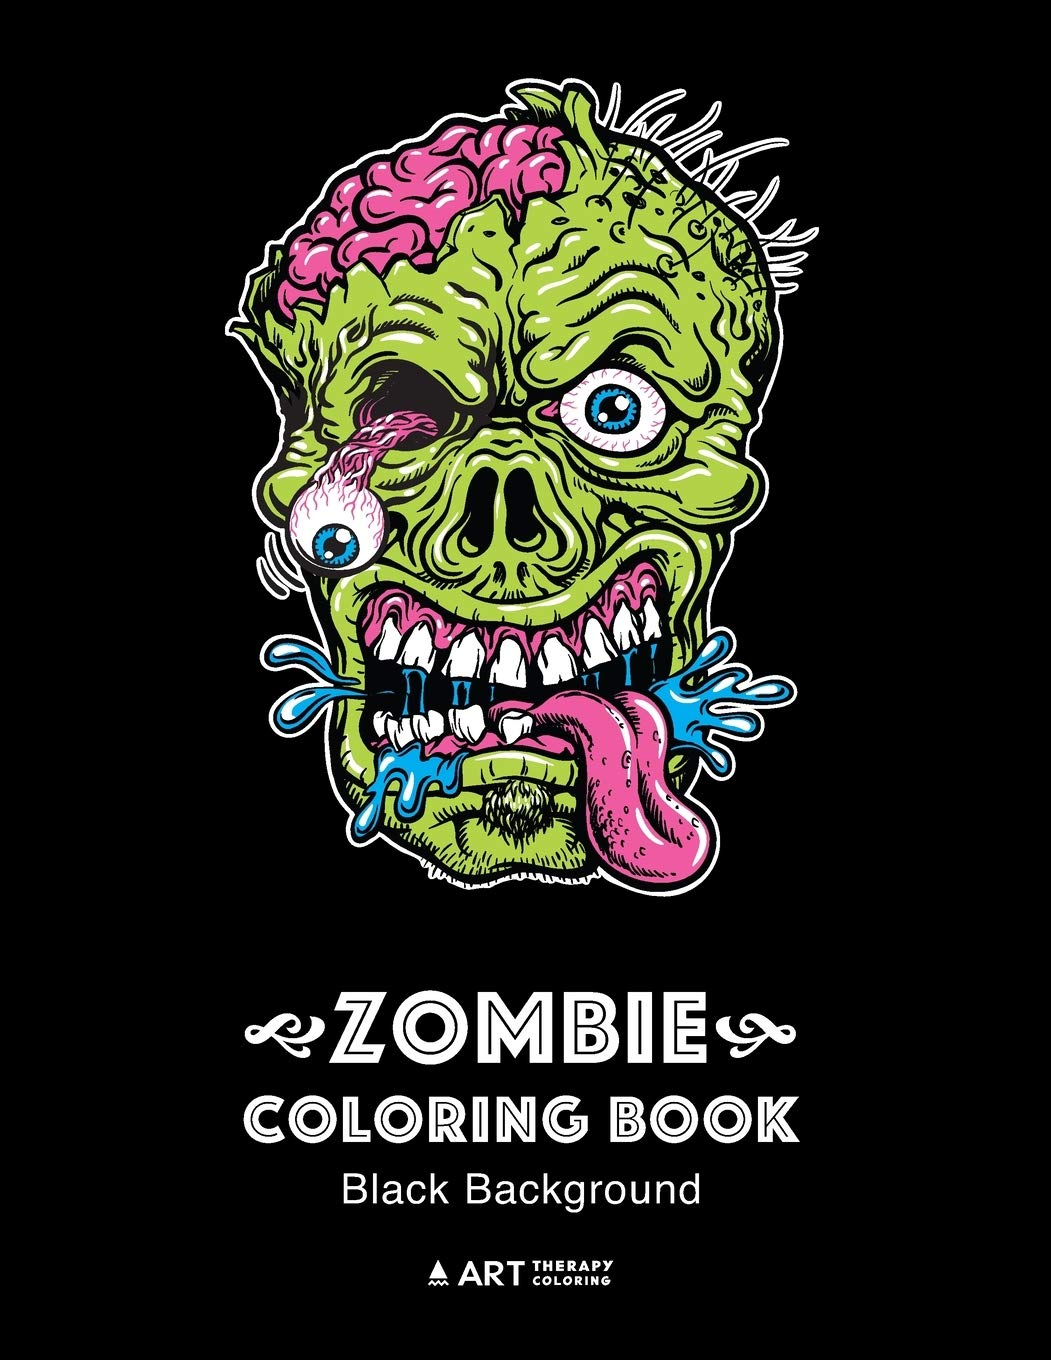 Amazon Com Zombie Coloring Book Black Background Midnight Edition Zombie Coloring Pages For Everyone Adults Teenagers Tweens Older Kids Boys Girls Practice For Stress Relief Relaxation 9781641260794 Art Therapy Coloring